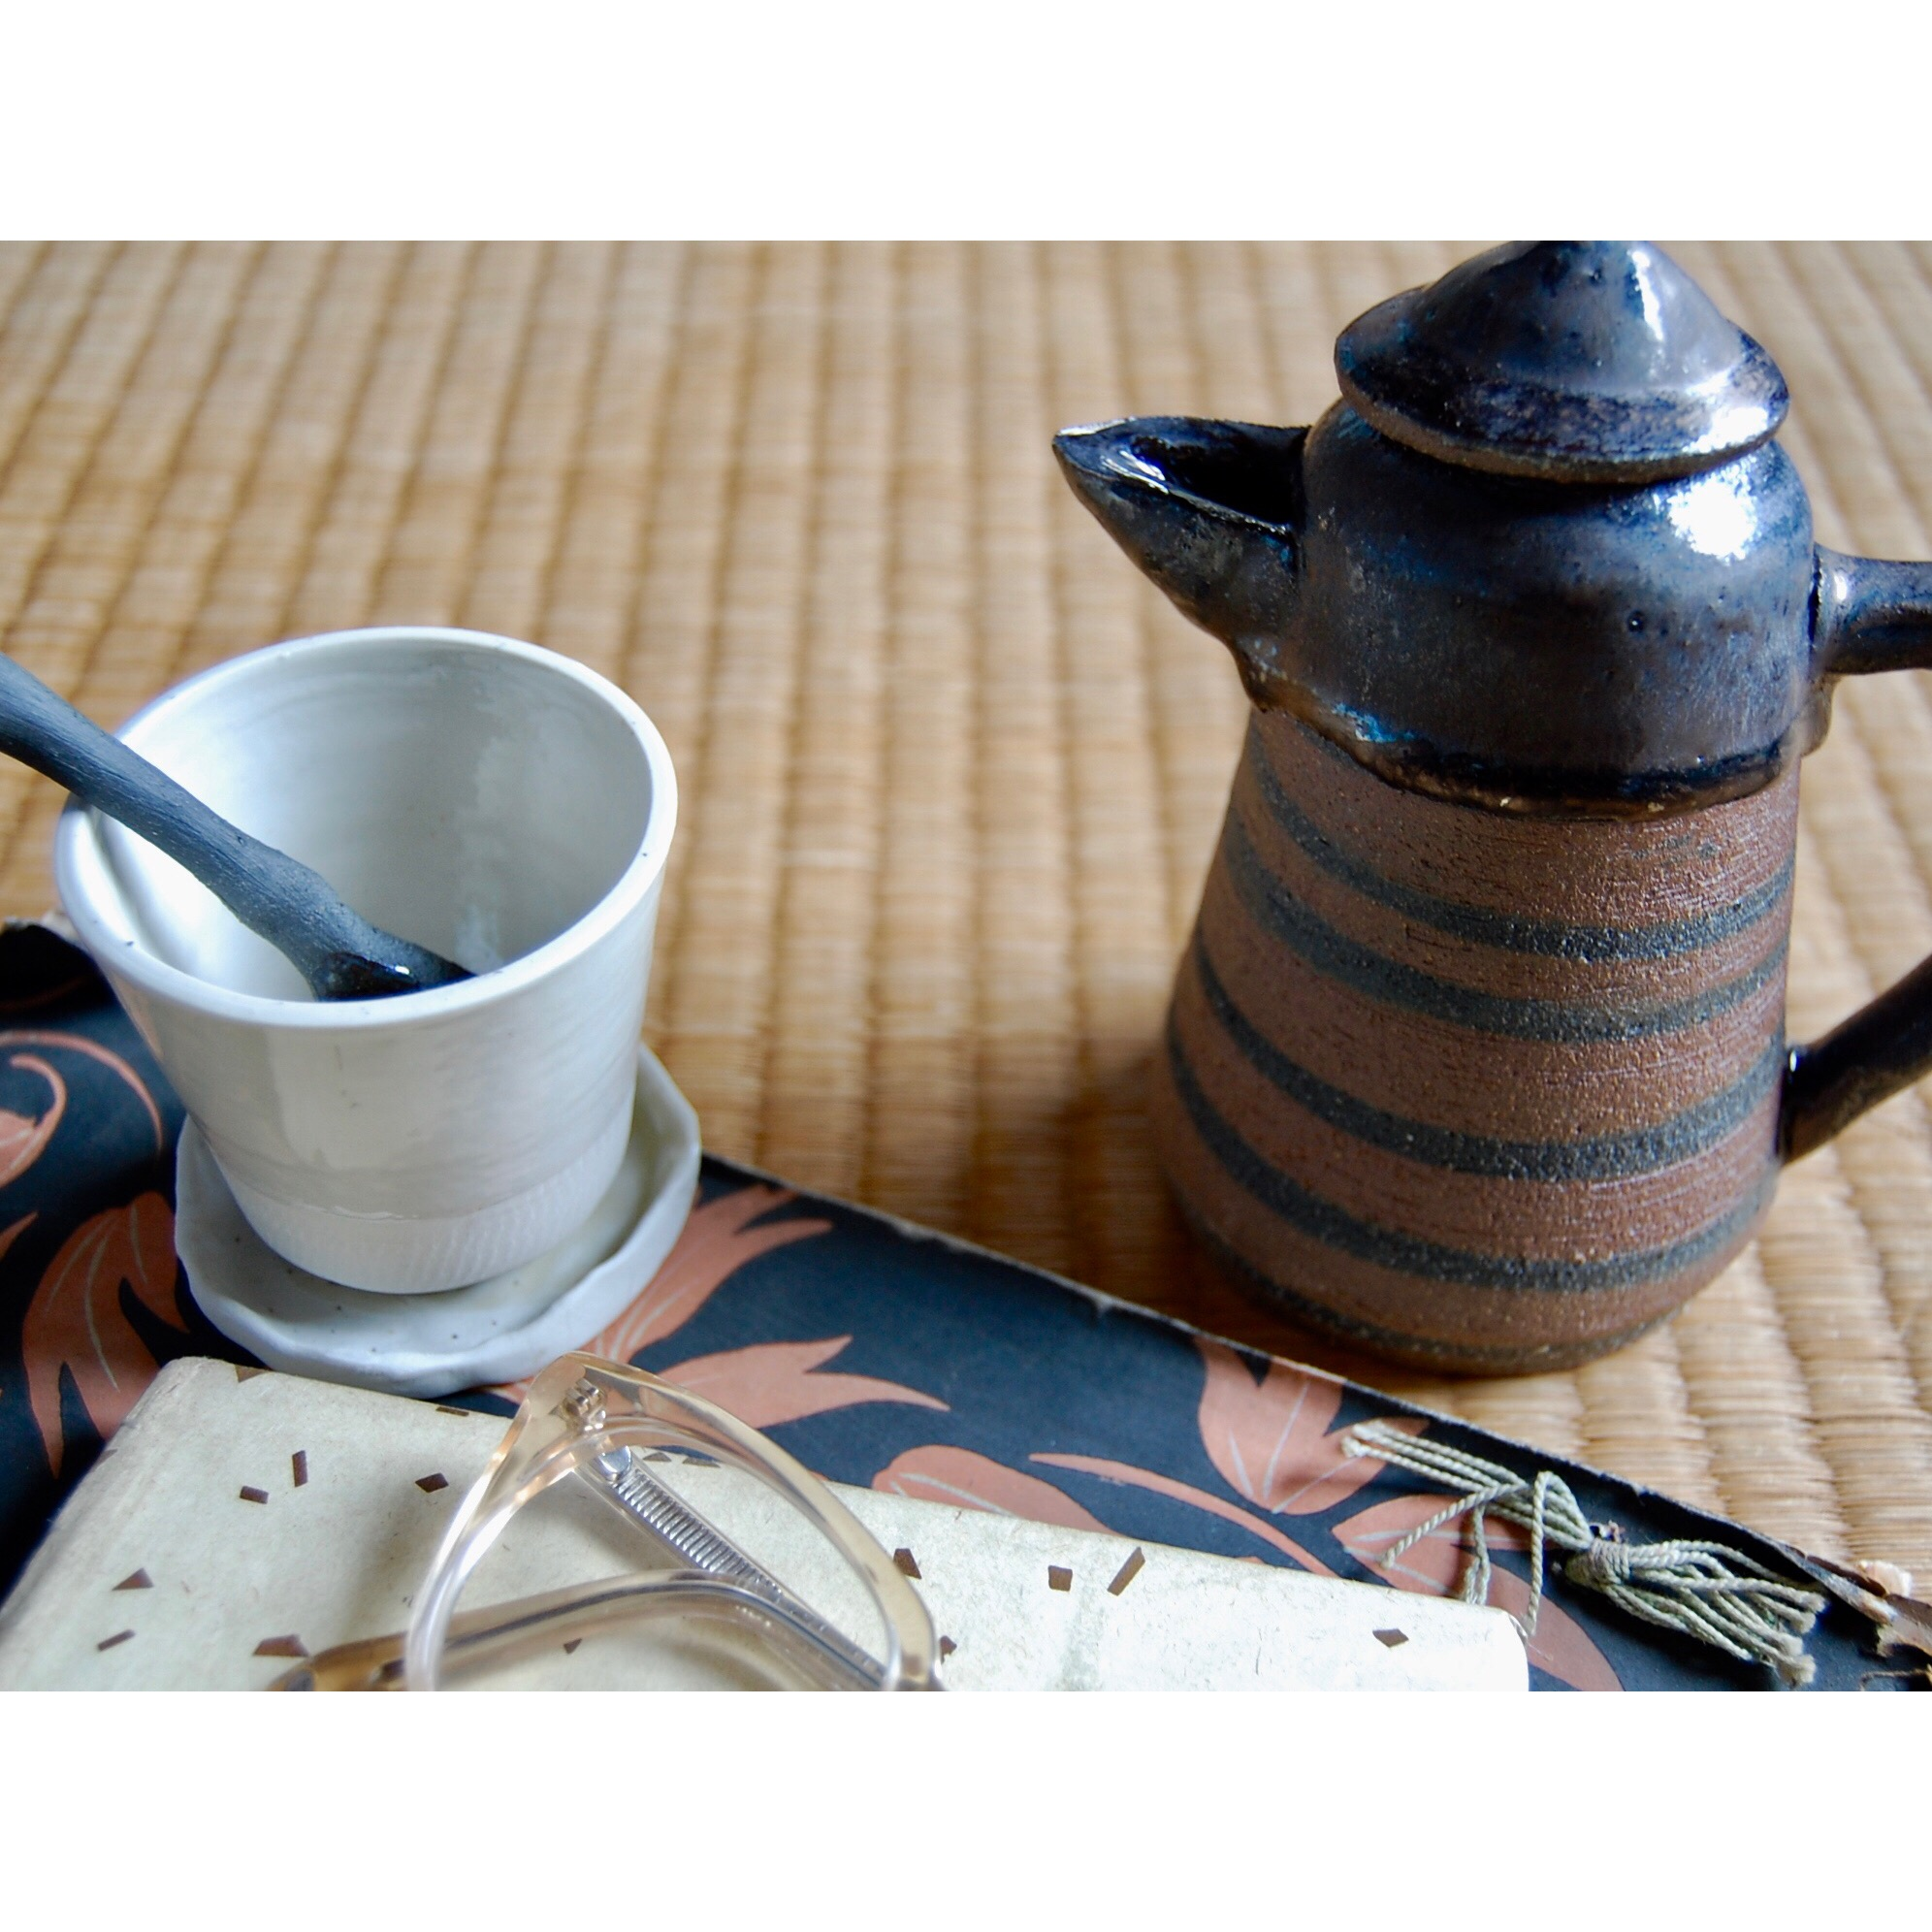 porcelain cup and teapot.jpg